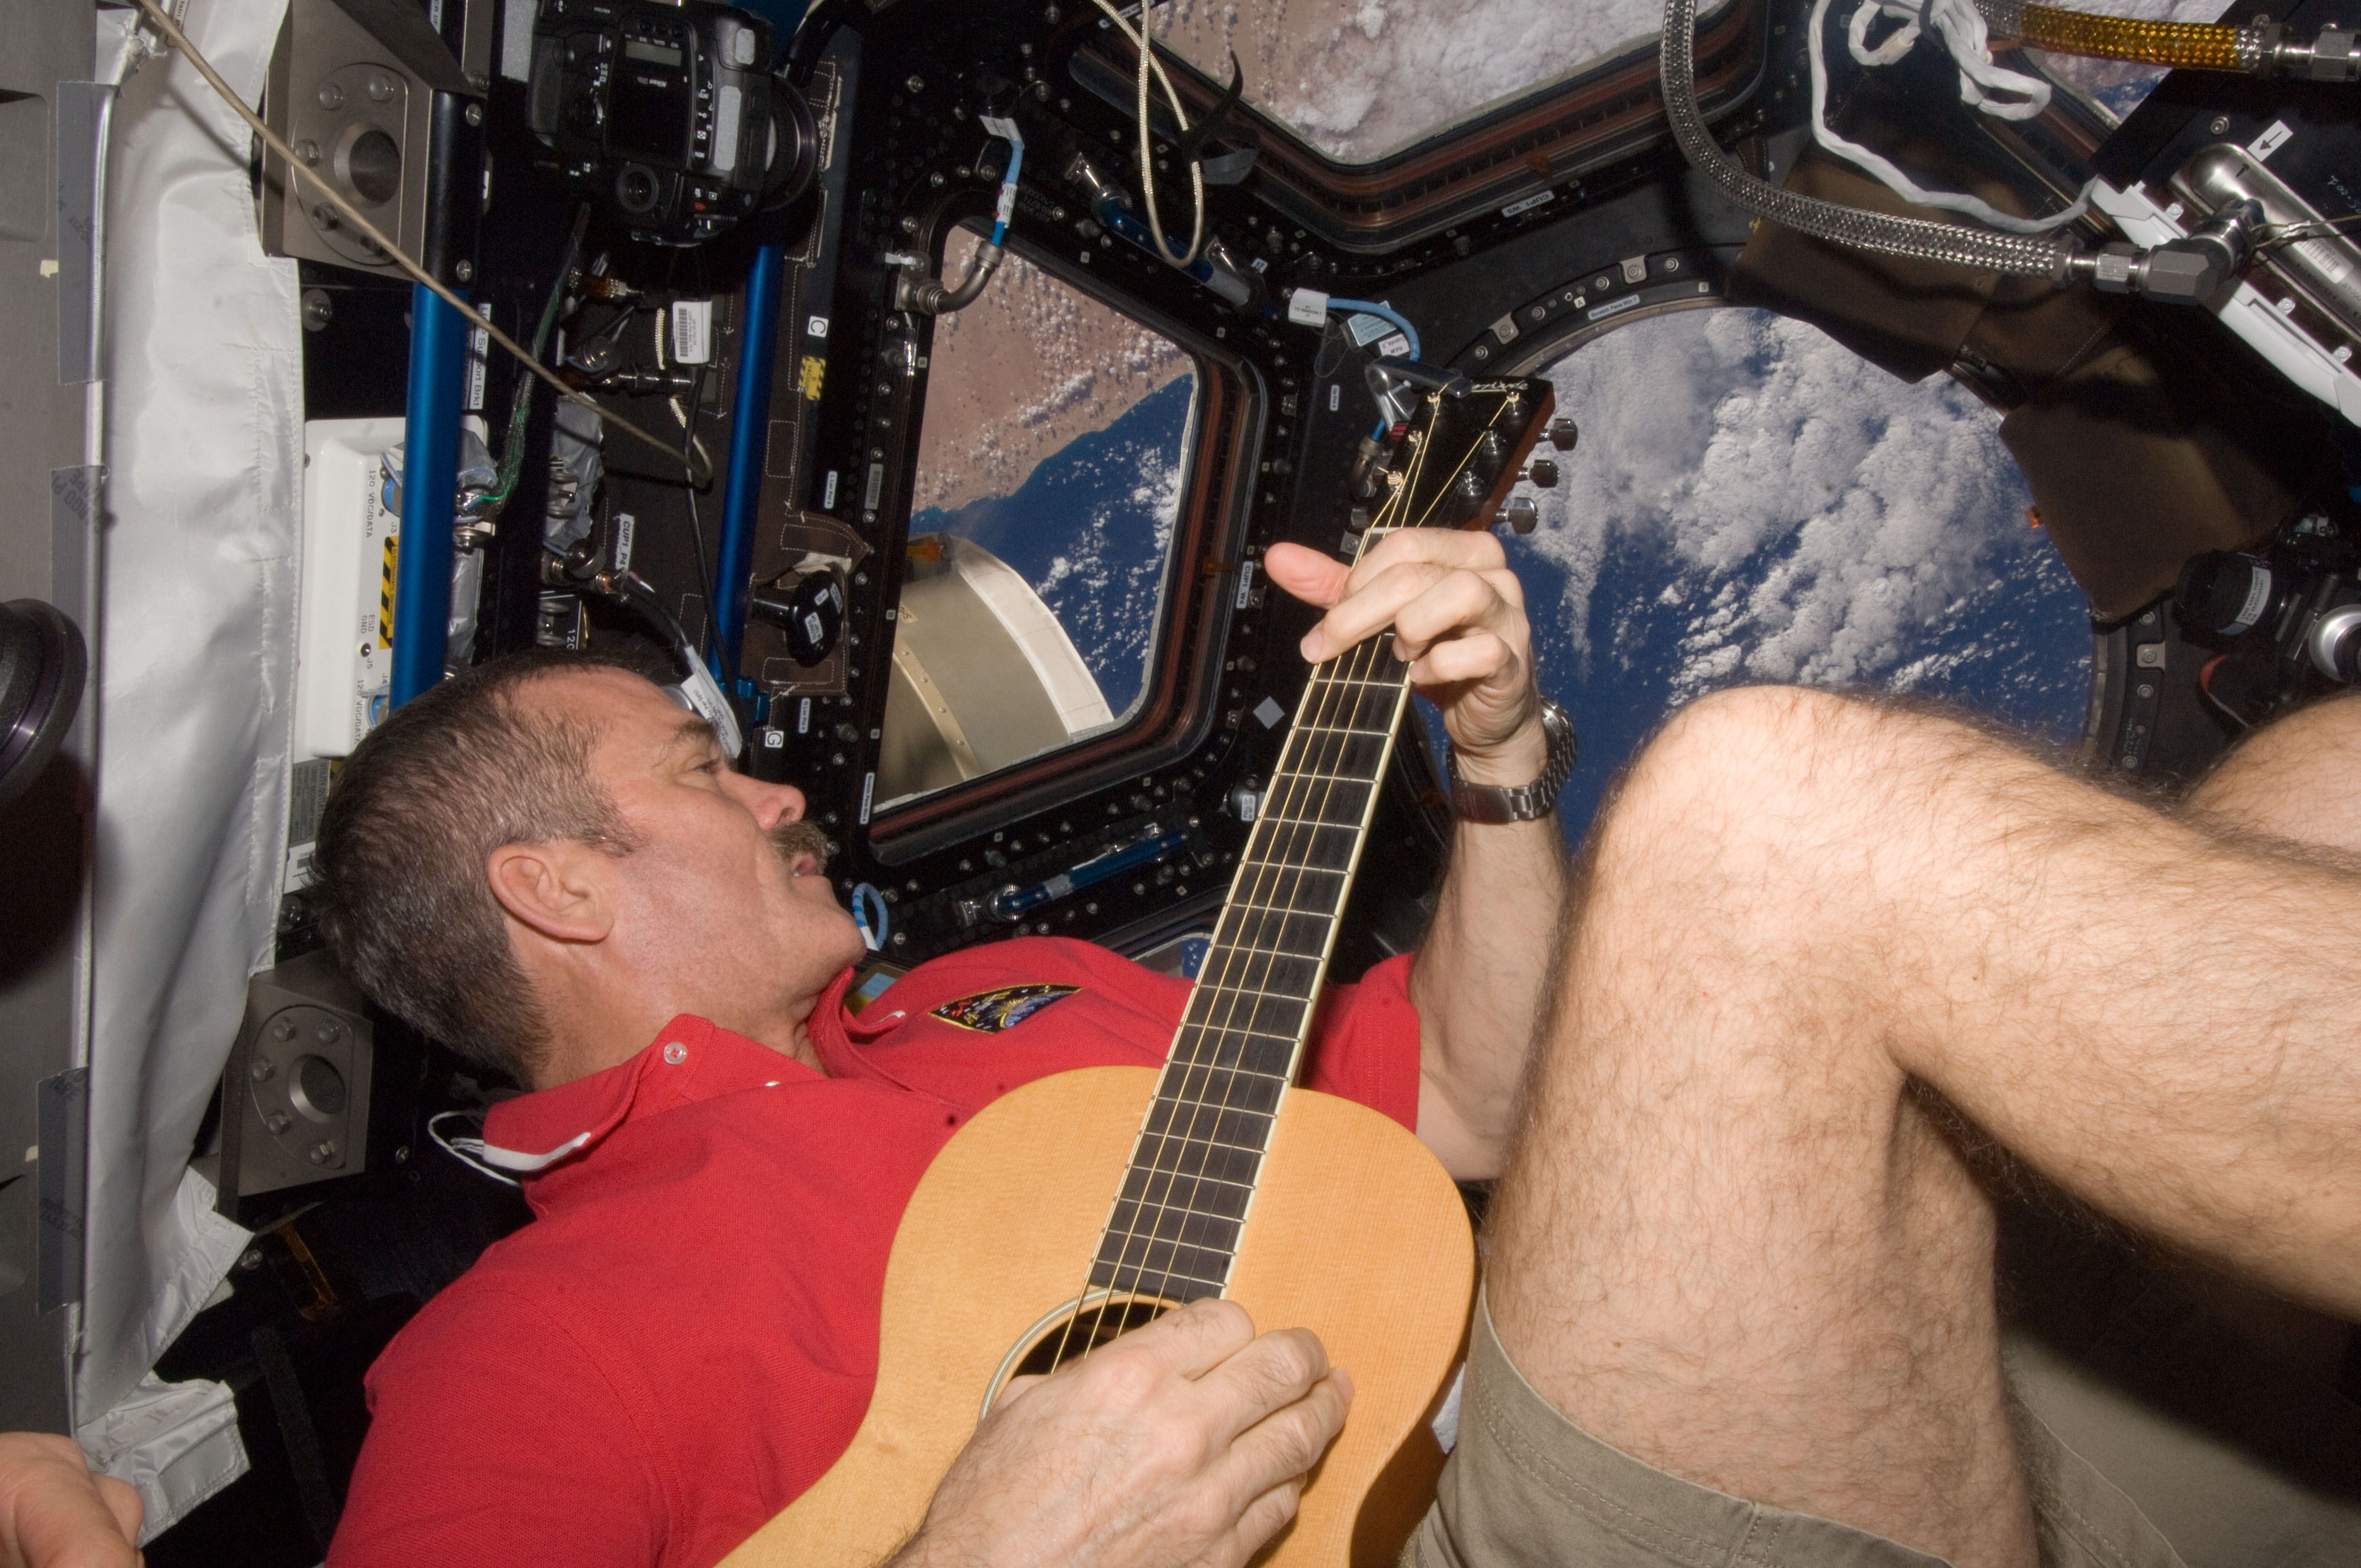 Strumming in Space